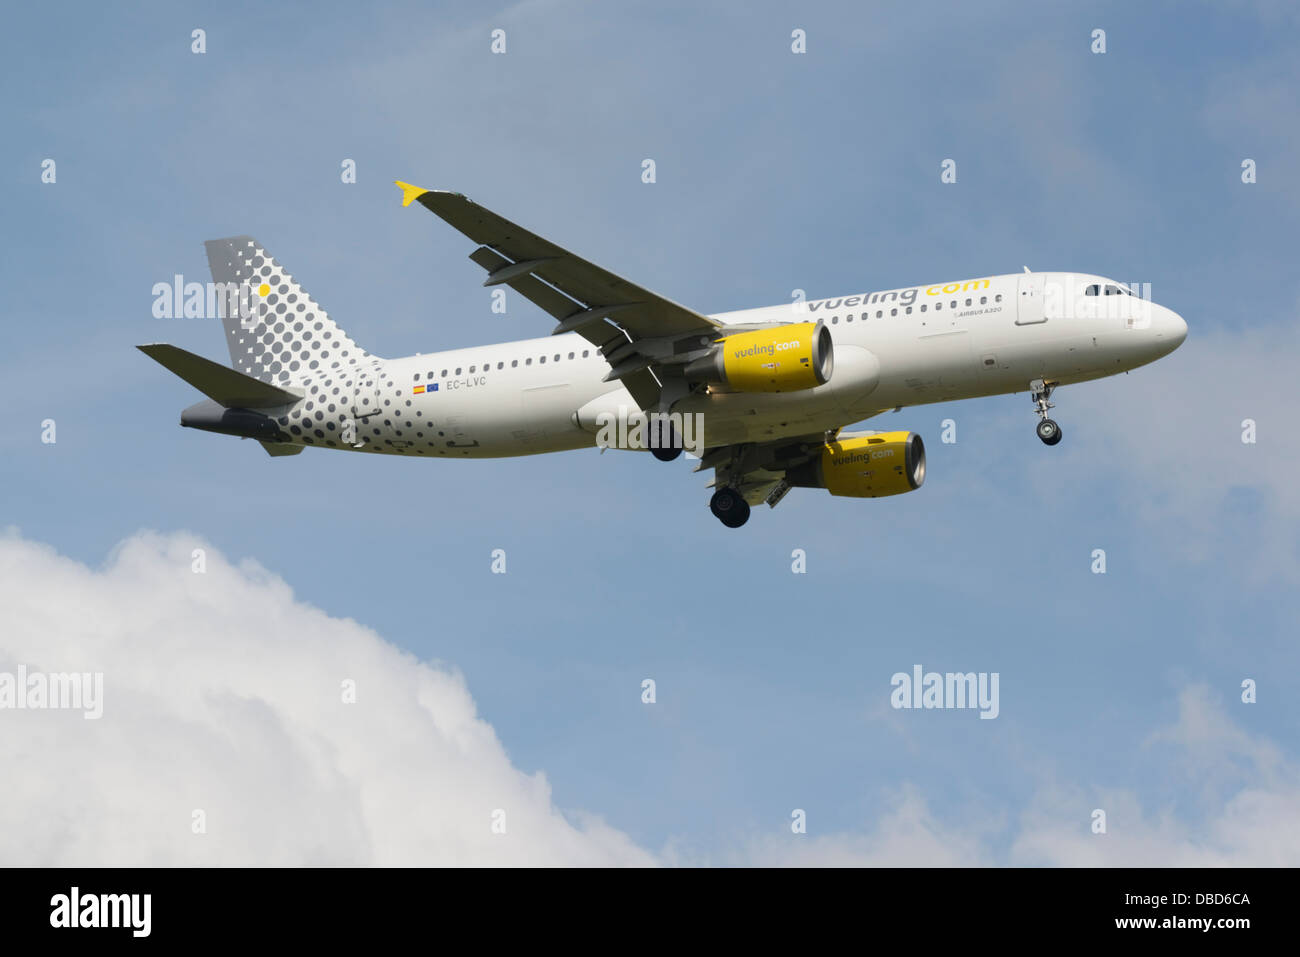 Vueling Airlines Airbus A320-200 on final approach - Stock Image